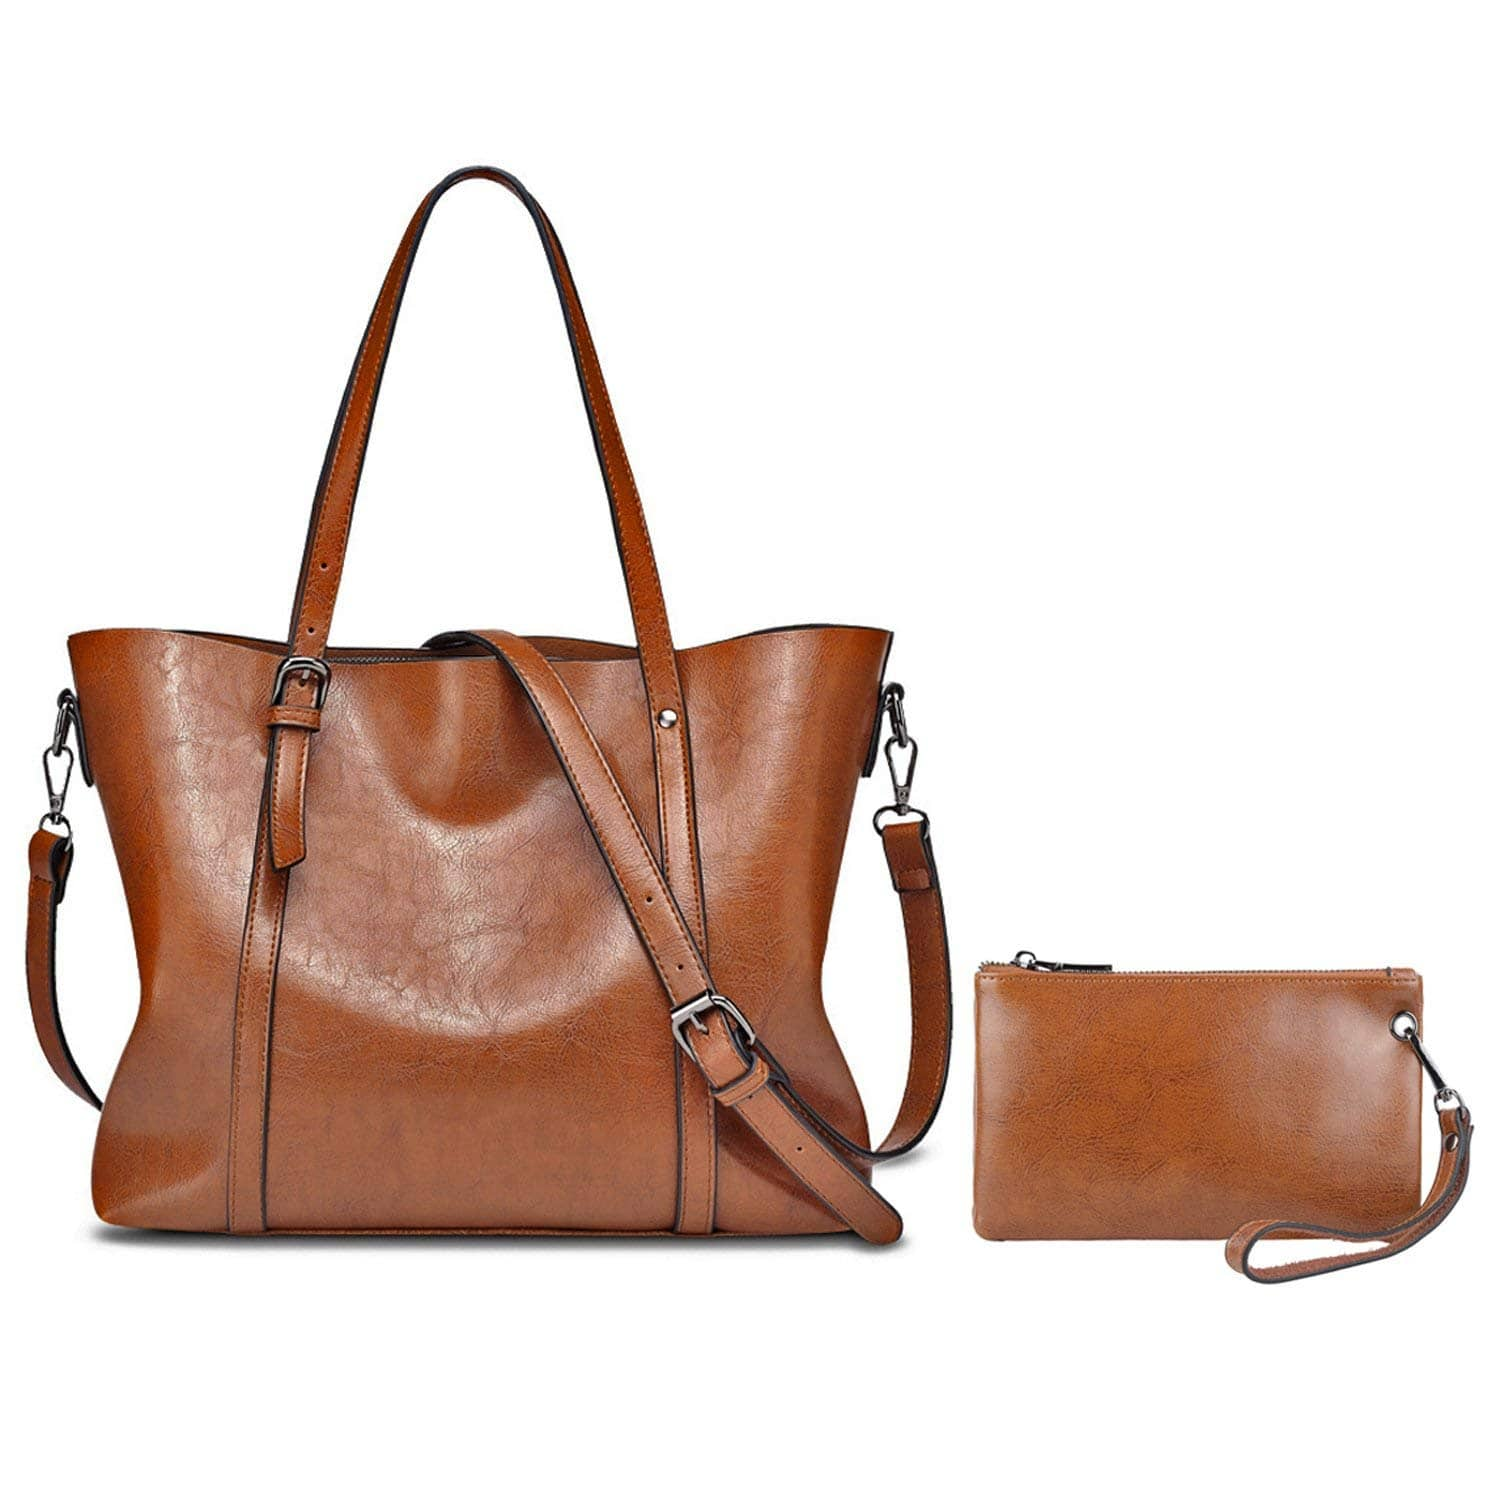 Women's Soft Leather Tote Handbag Shoulder Bag + Extra Wallet for only $47.99 + FS on Amazon